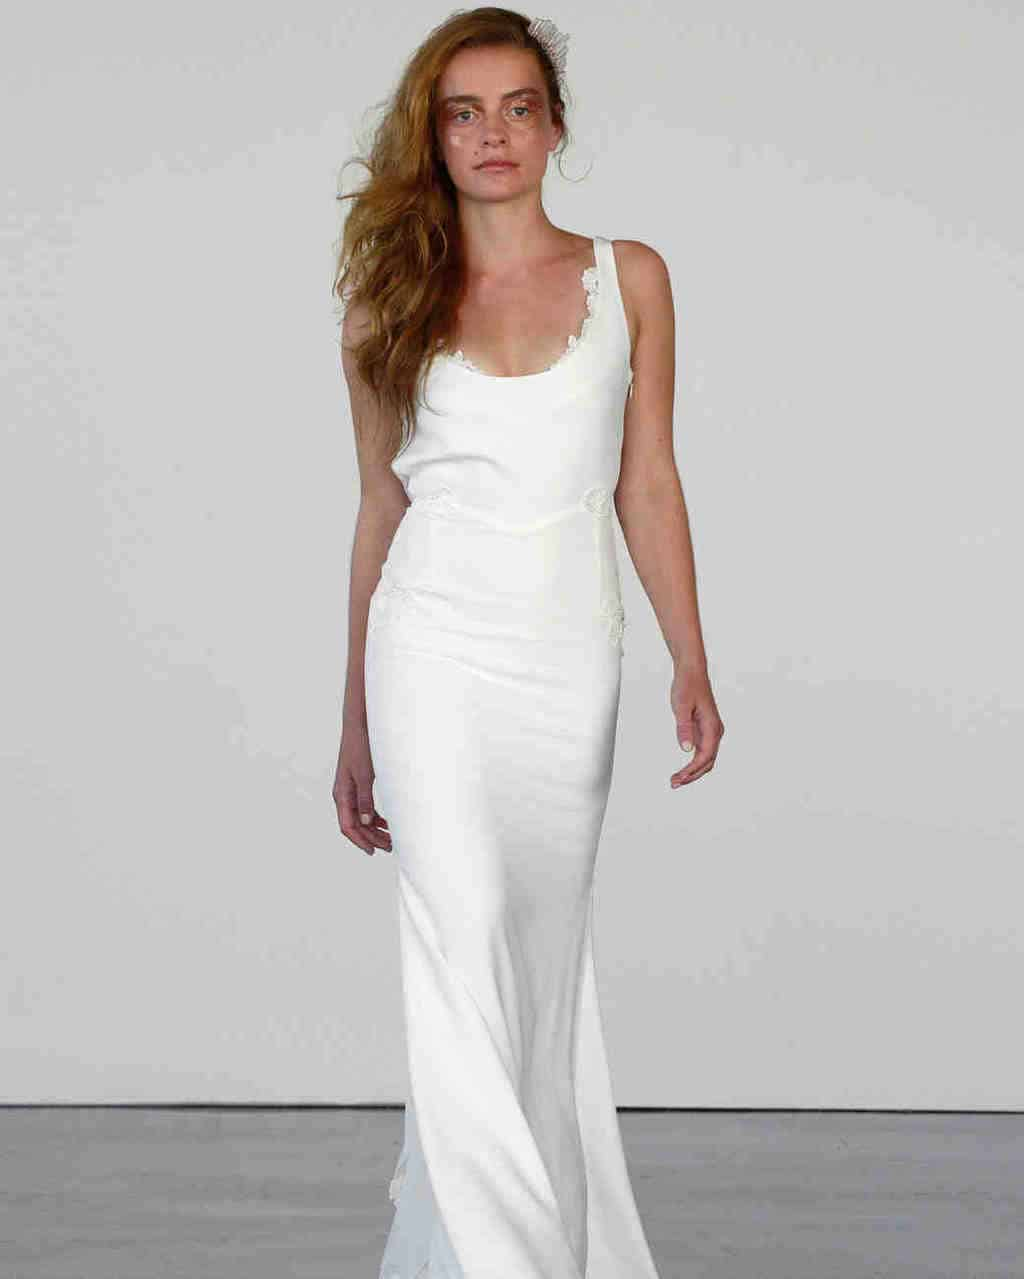 rime-arodaky-wedding-dress-fall2017-6203351-010_vert